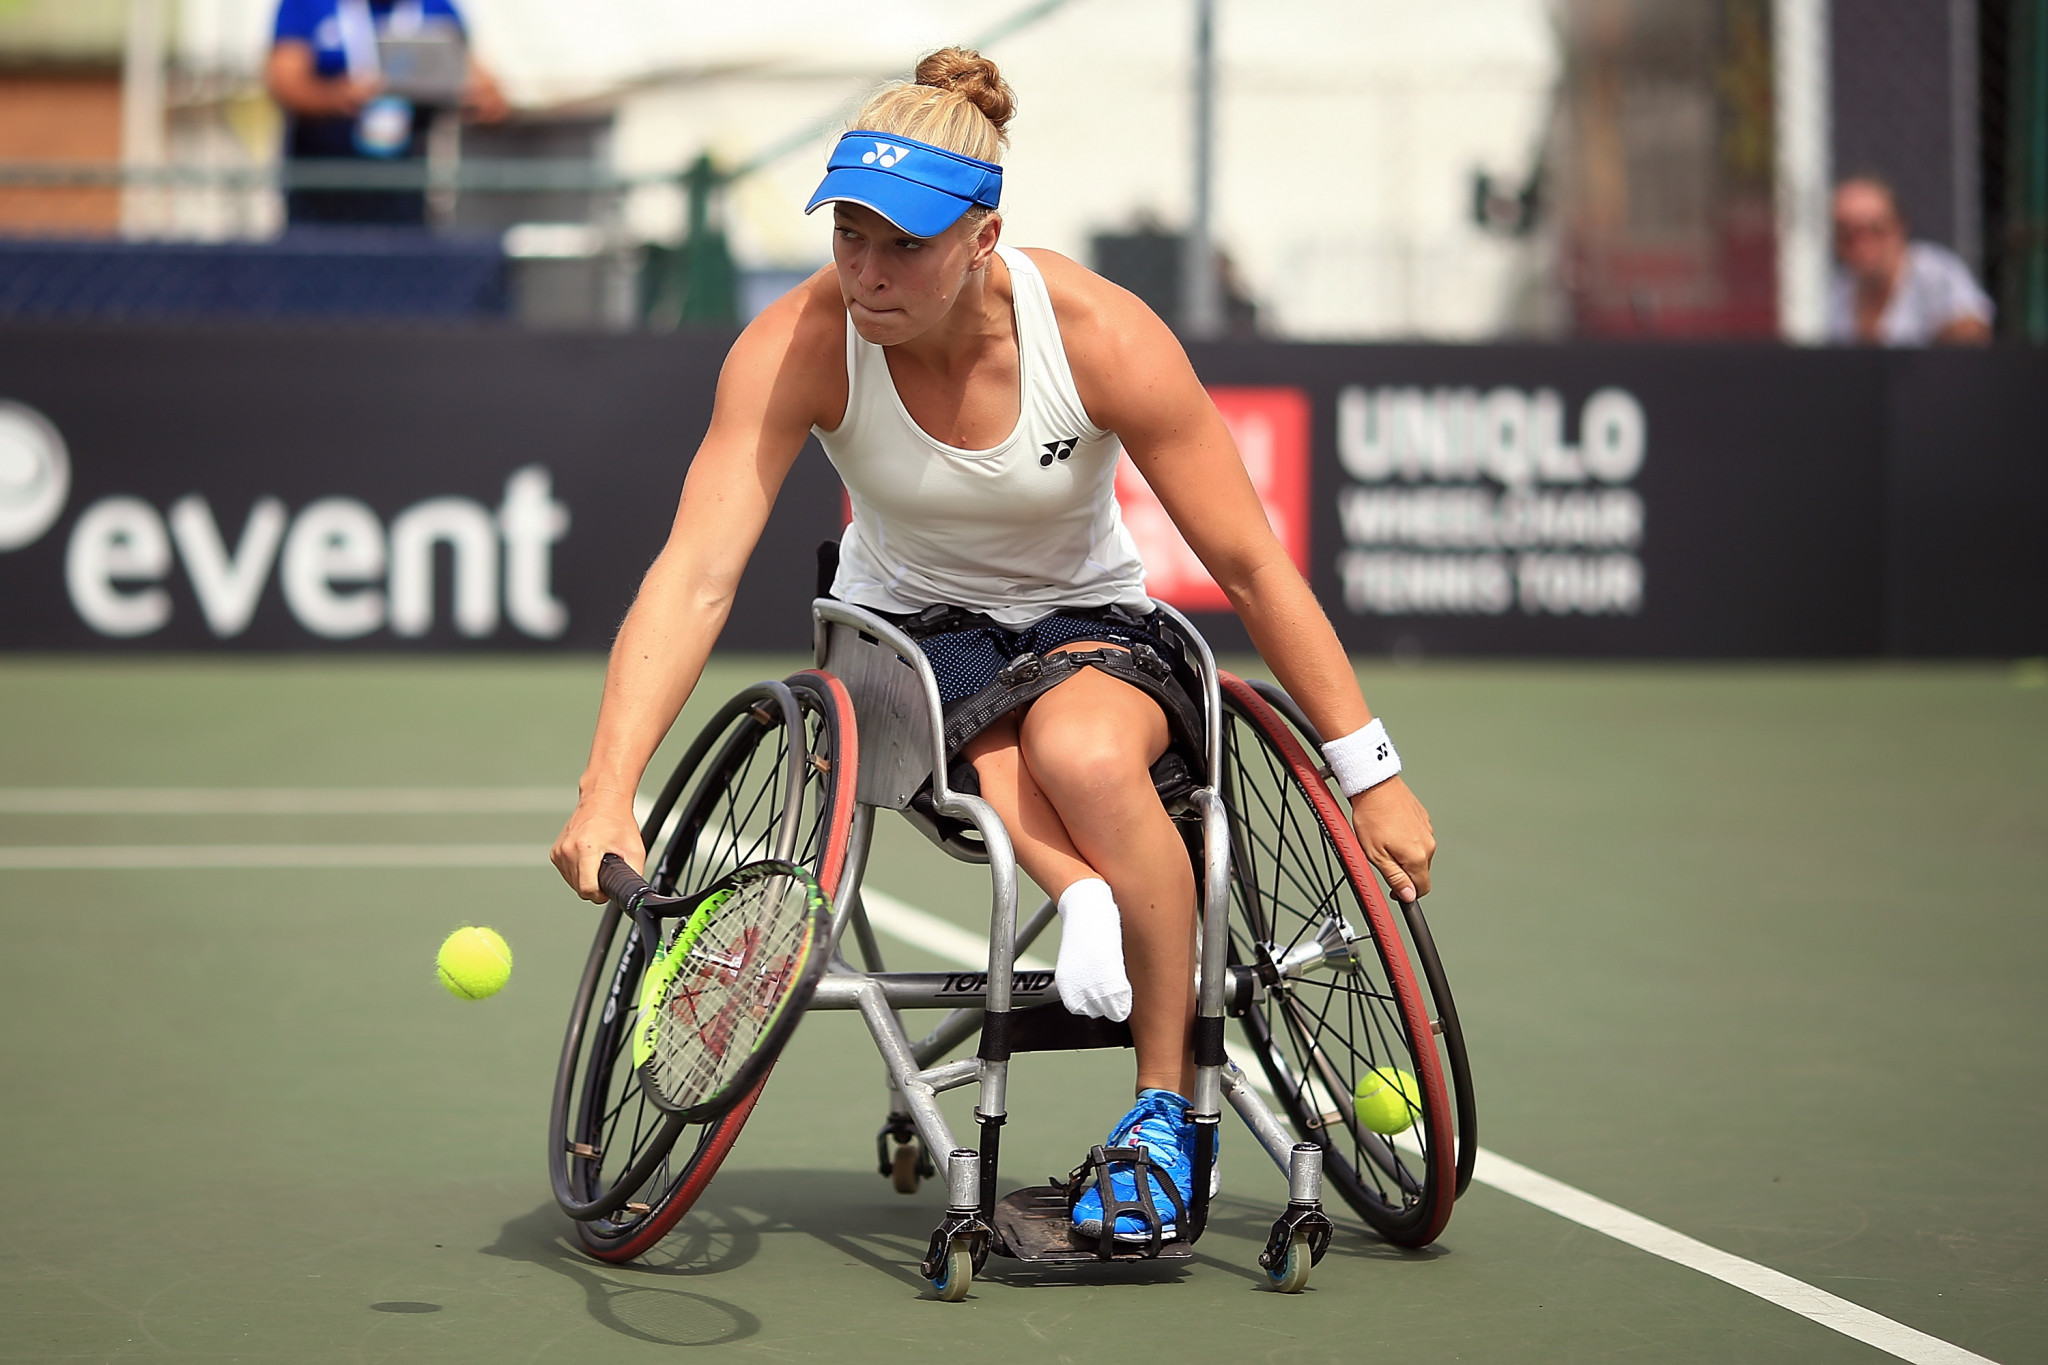 De Groot defends Wheelchair Tennis Masters title in Orlando